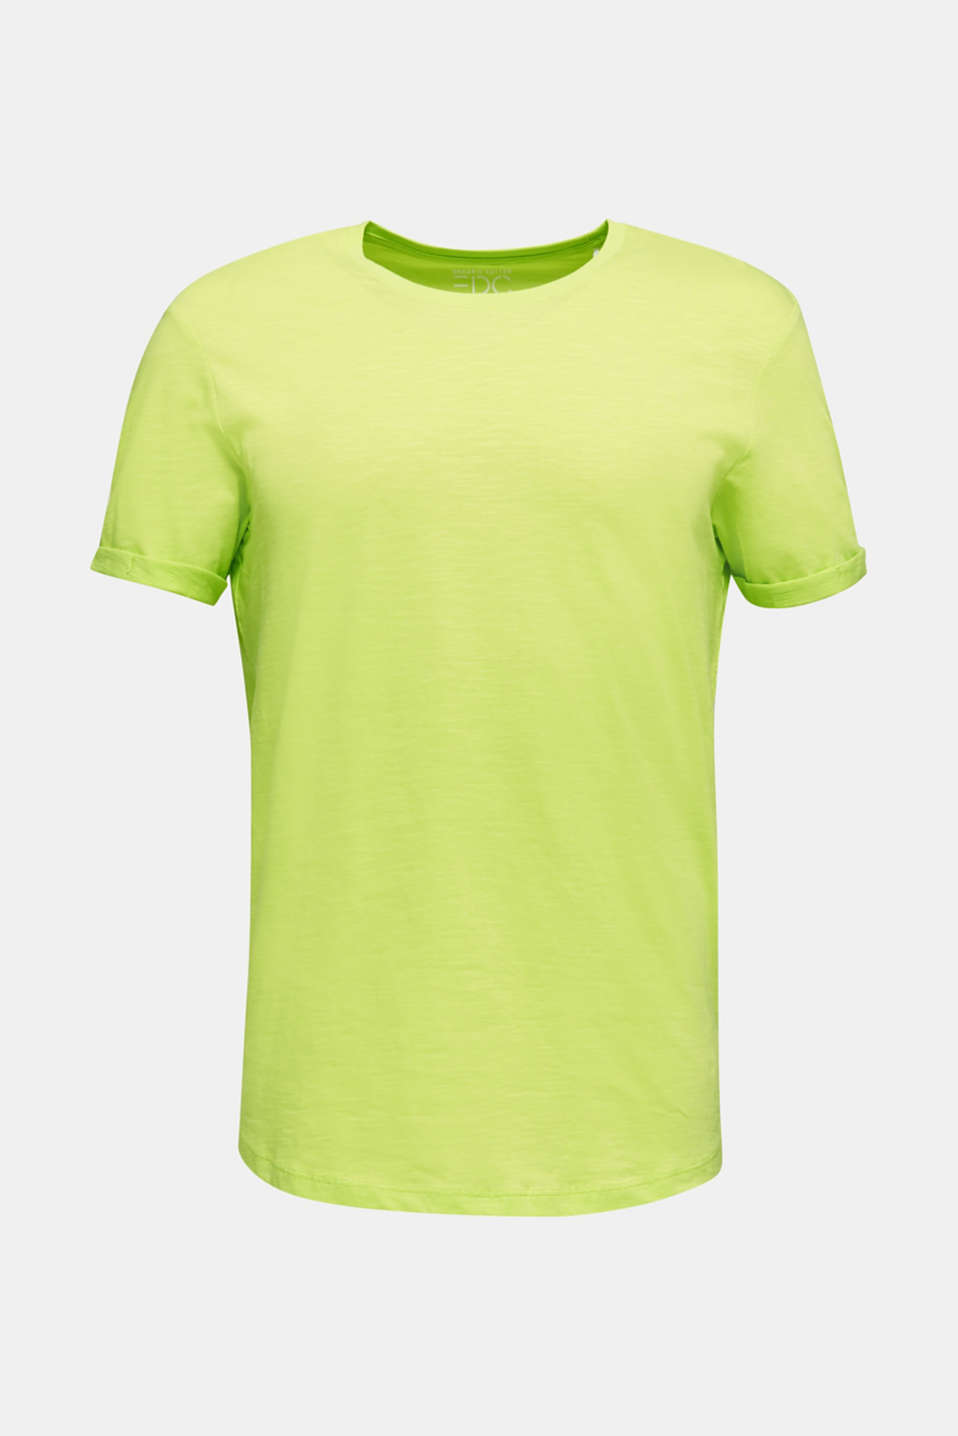 Slub jersey T-shirt in 100% cotton, BRIGHT YELLOW, detail image number 7